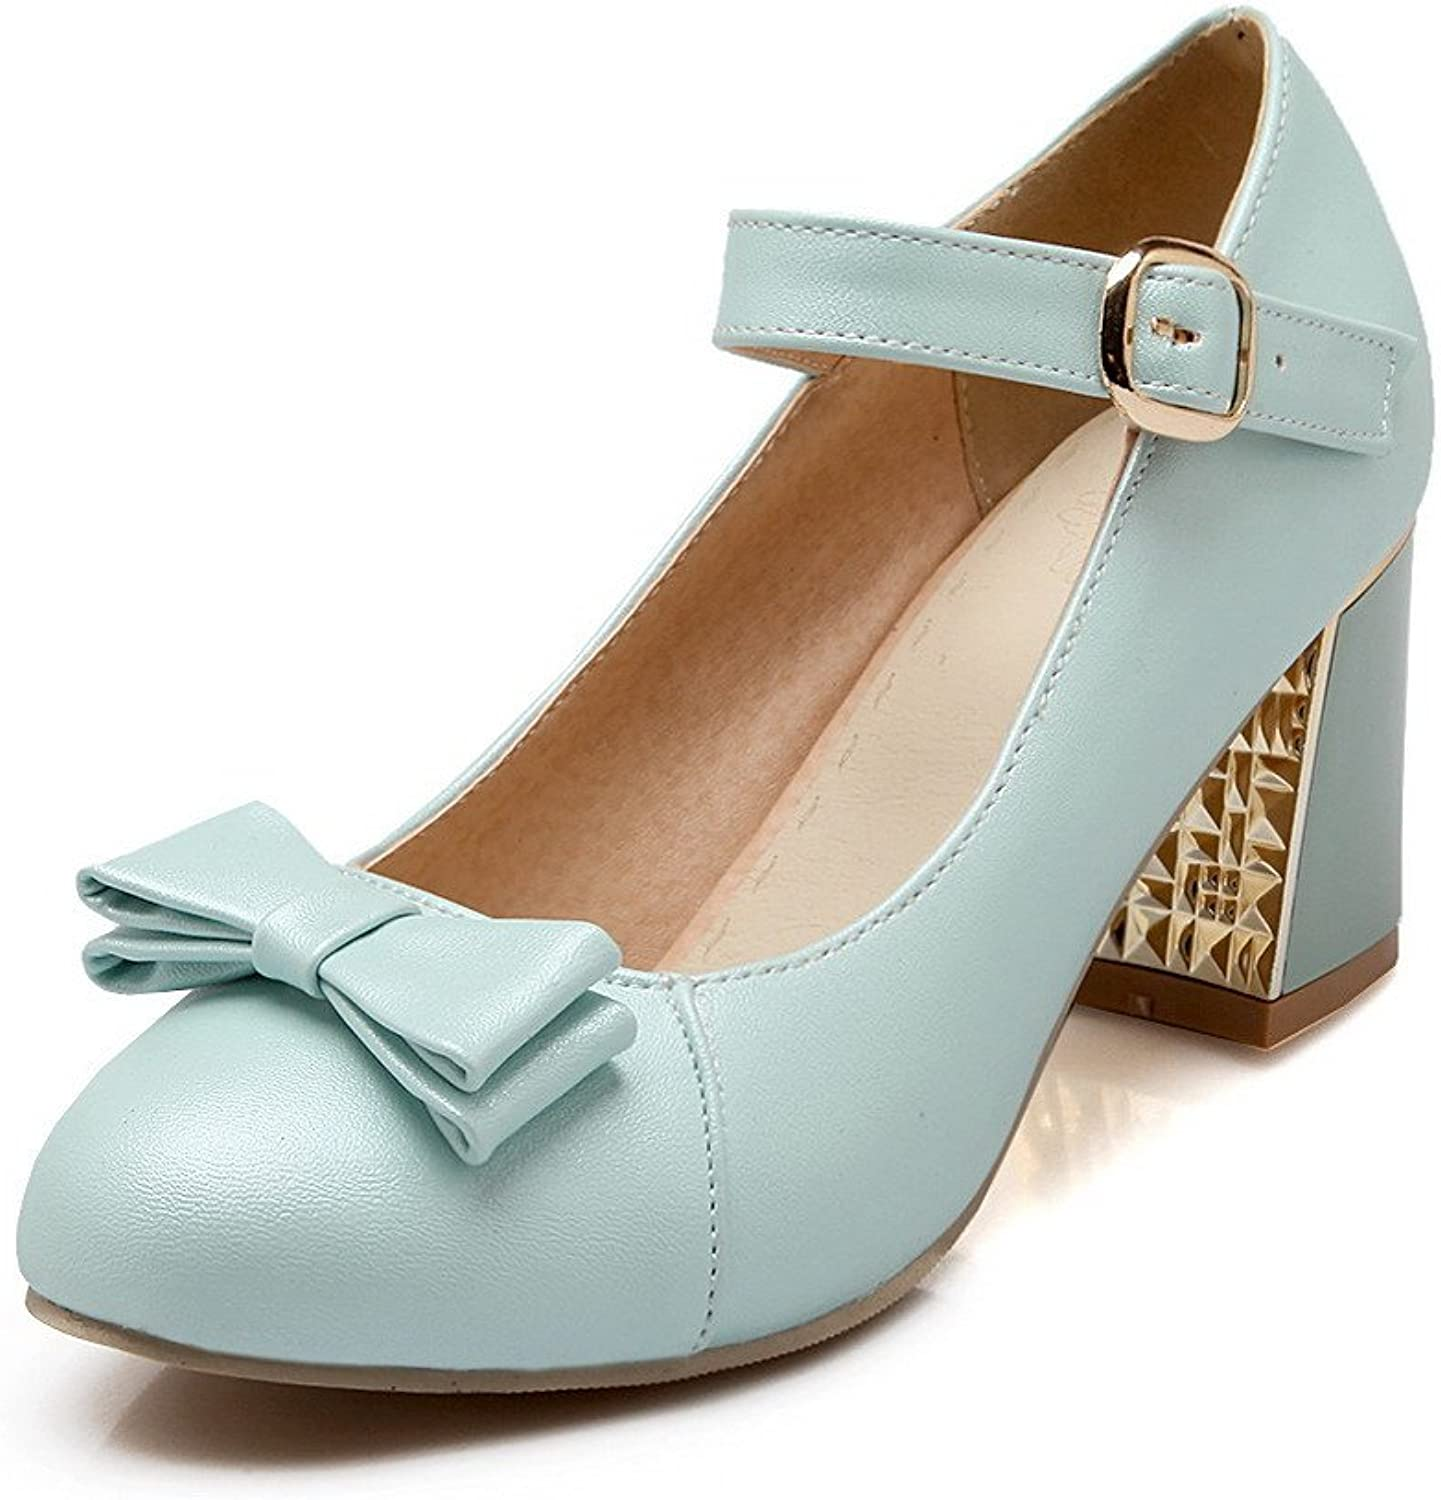 WeenFashion Women's Buckle PU Round Closed Toe High-Heels Solid Pumps-shoes